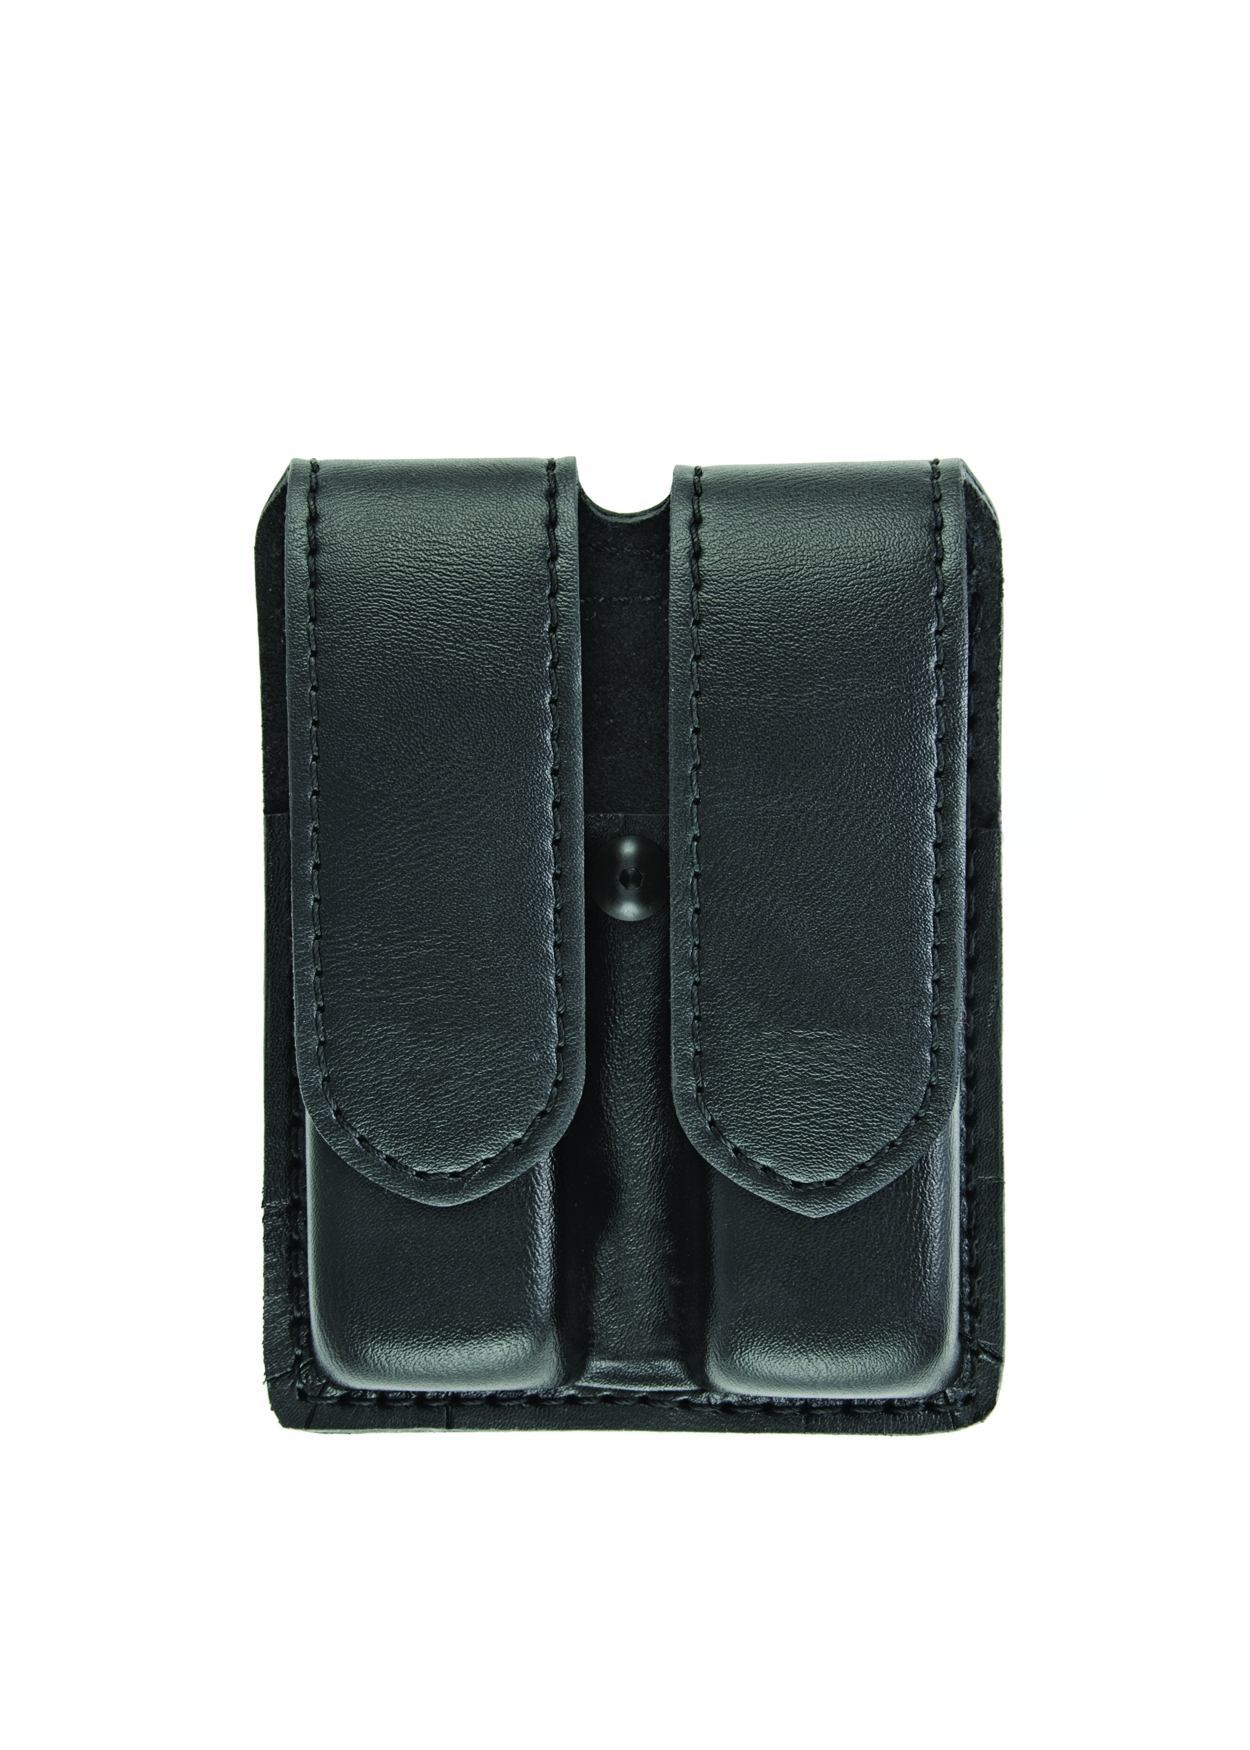 Double Magazine Case, Medium, AirTek, Smooth, Hidden Snaps-